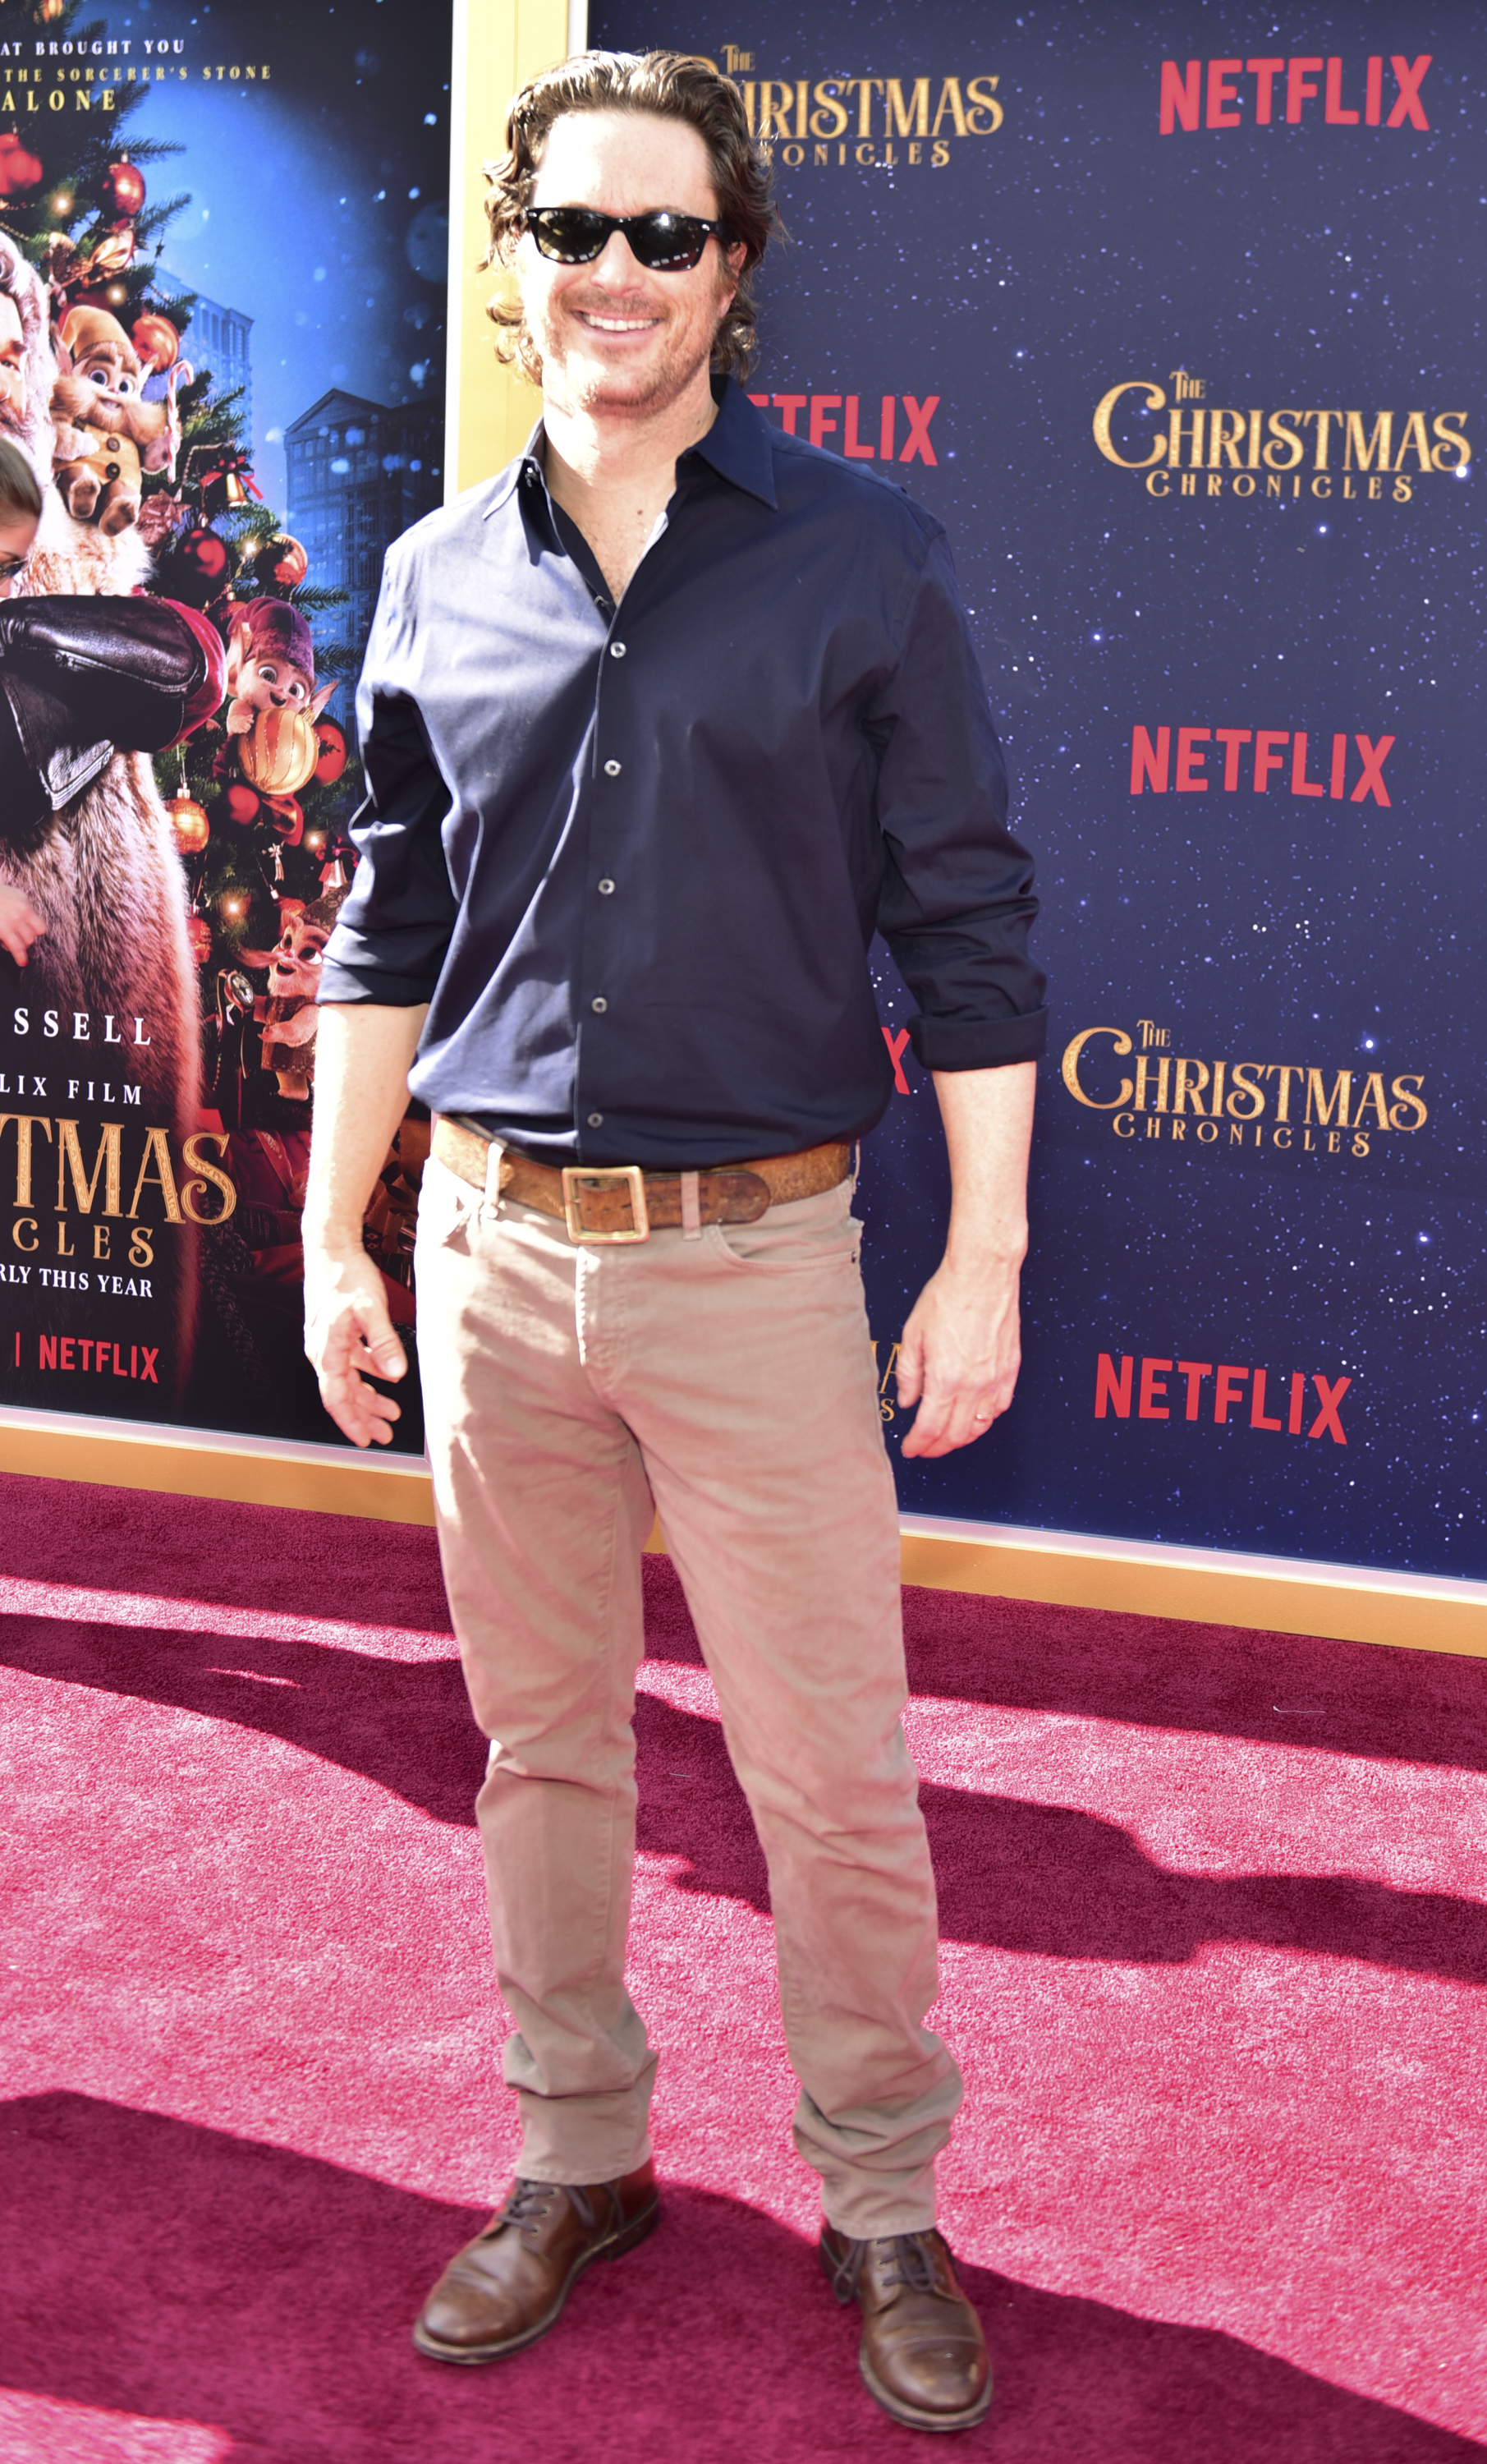 Oliver Hudson arrives at the premiere of Netflix's 'The Christmas Chronicles' (Photo by Rodin Eckenroth/Getty Images)